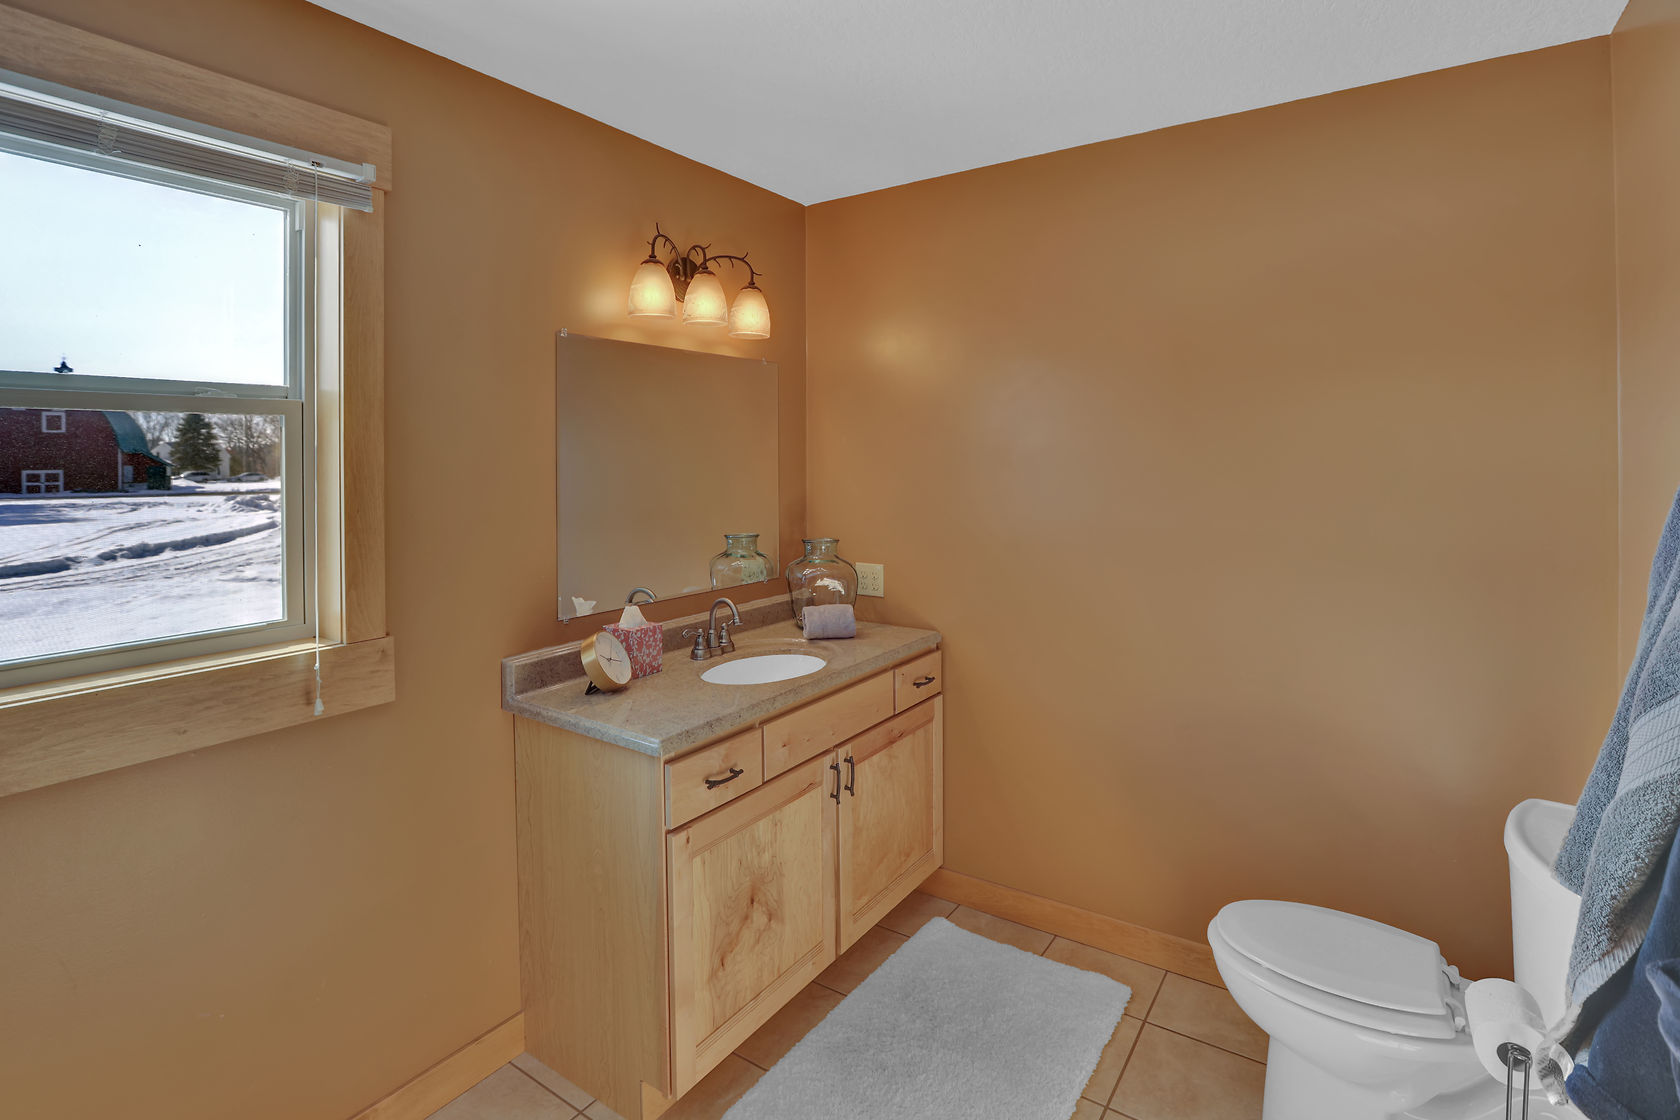 virtual-tour-307068-mls-high-res-image-6